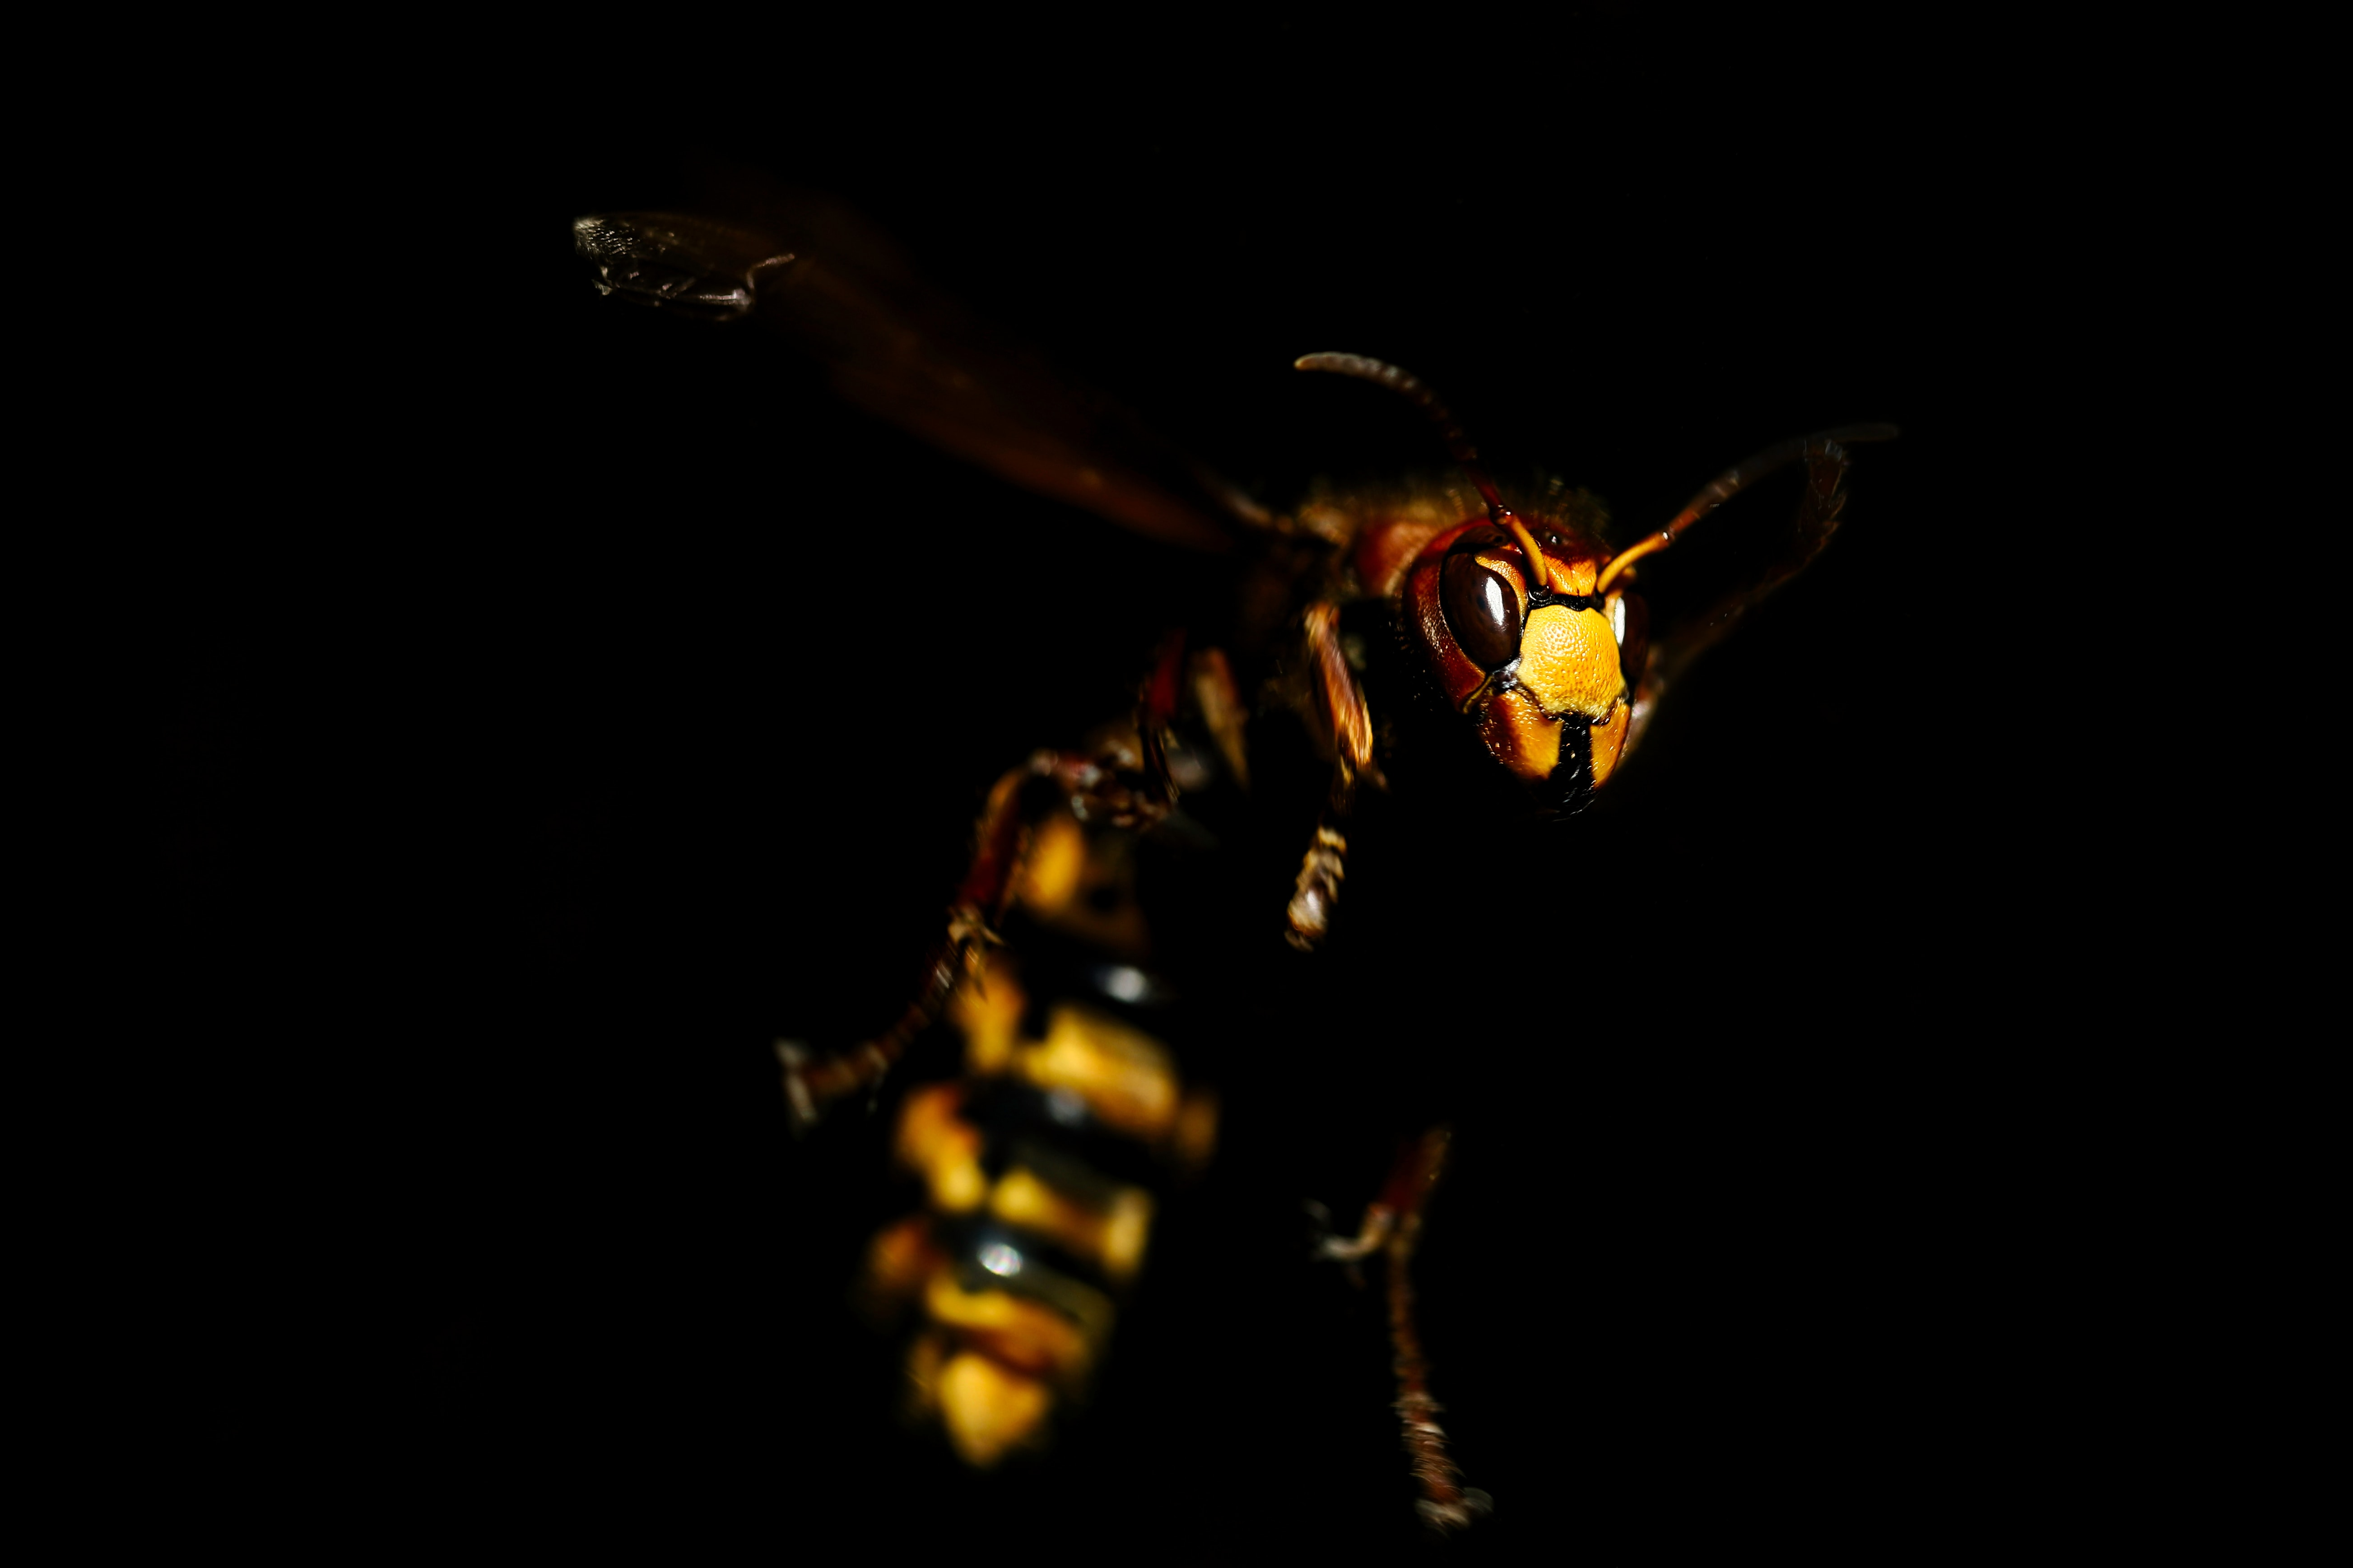 a flying wasp in mid air